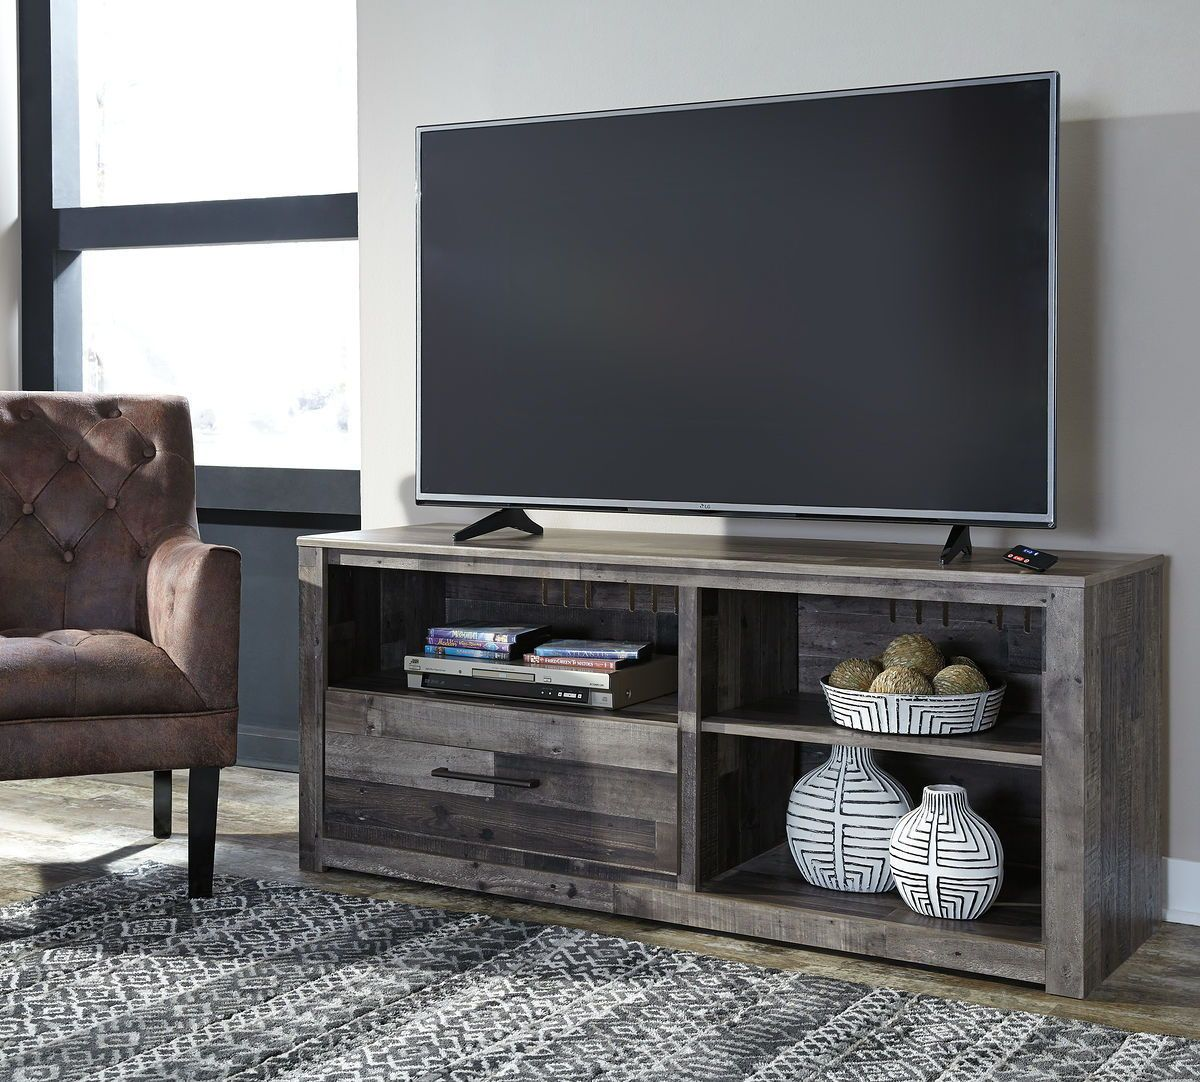 The Derekson Multi Lg Tv Stand W Fireplace Option Available At United Furniture Ser Large Tv Stands Entertainment Center Furniture Home Entertainment Furniture